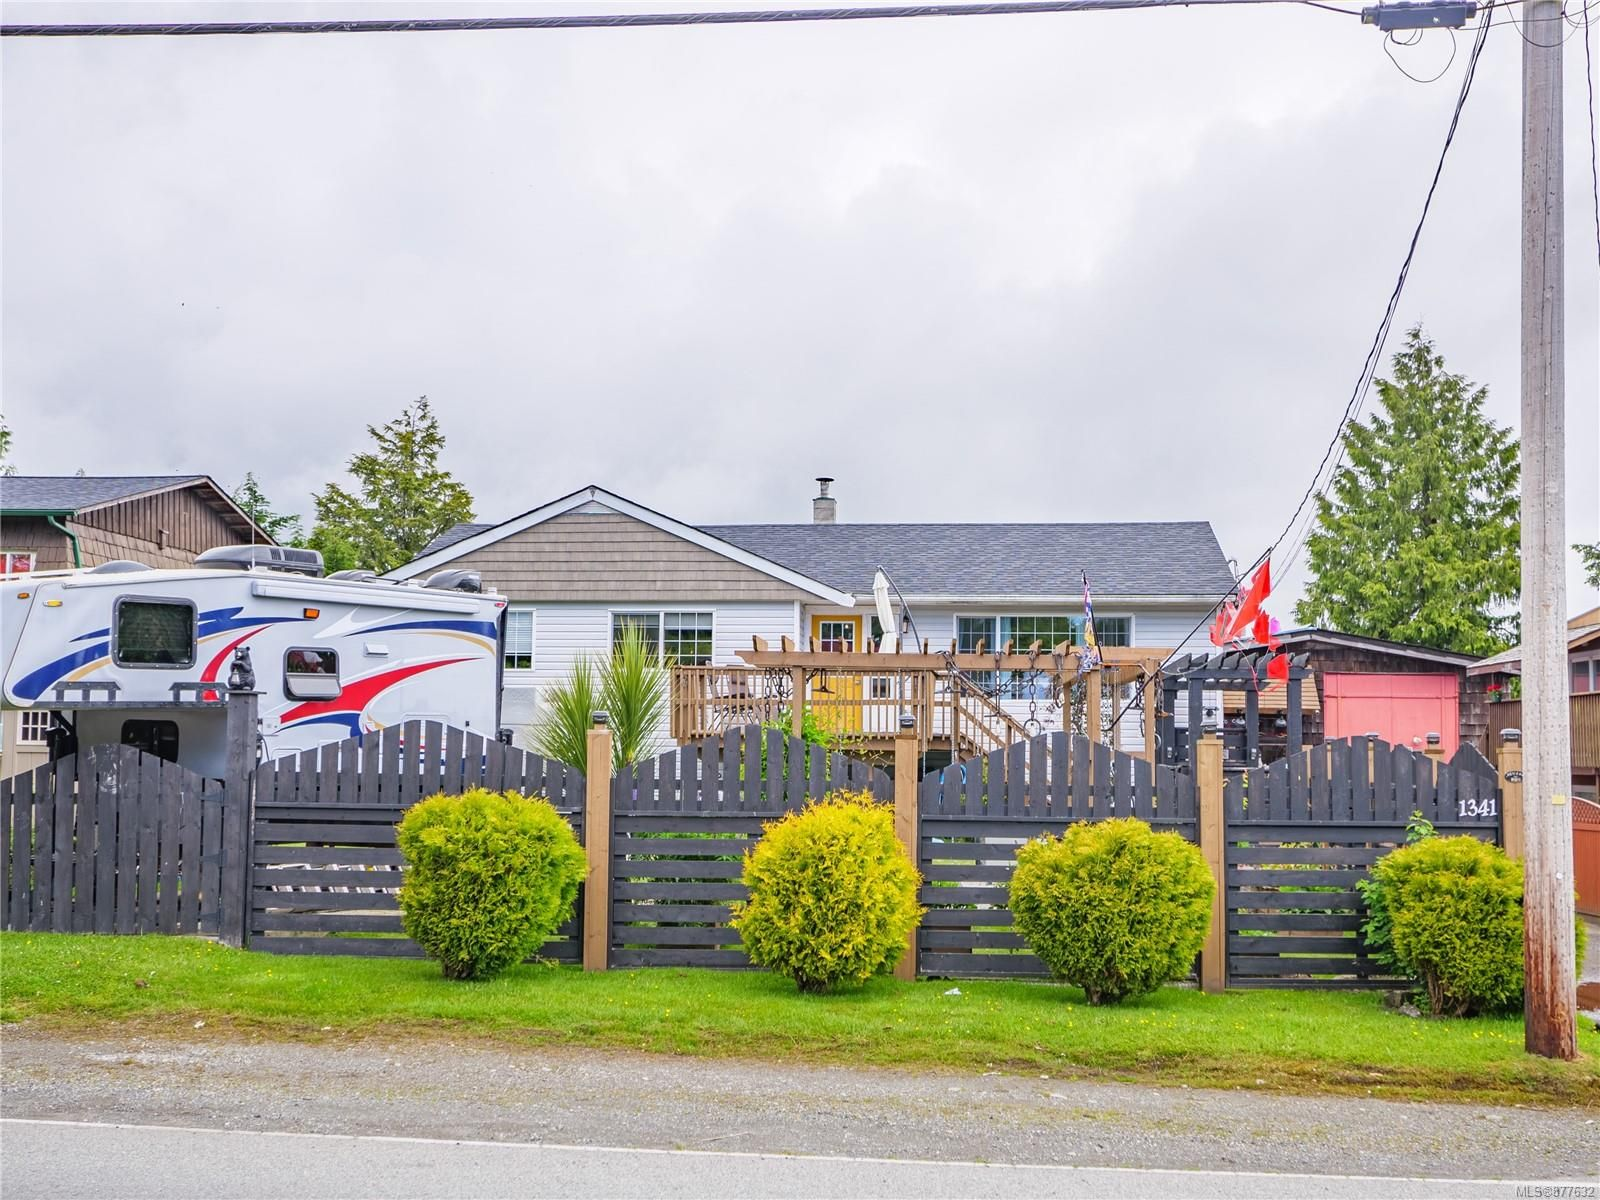 Main Photo: 1341 Peninsula Rd in : PA Ucluelet House for sale (Port Alberni)  : MLS®# 877632